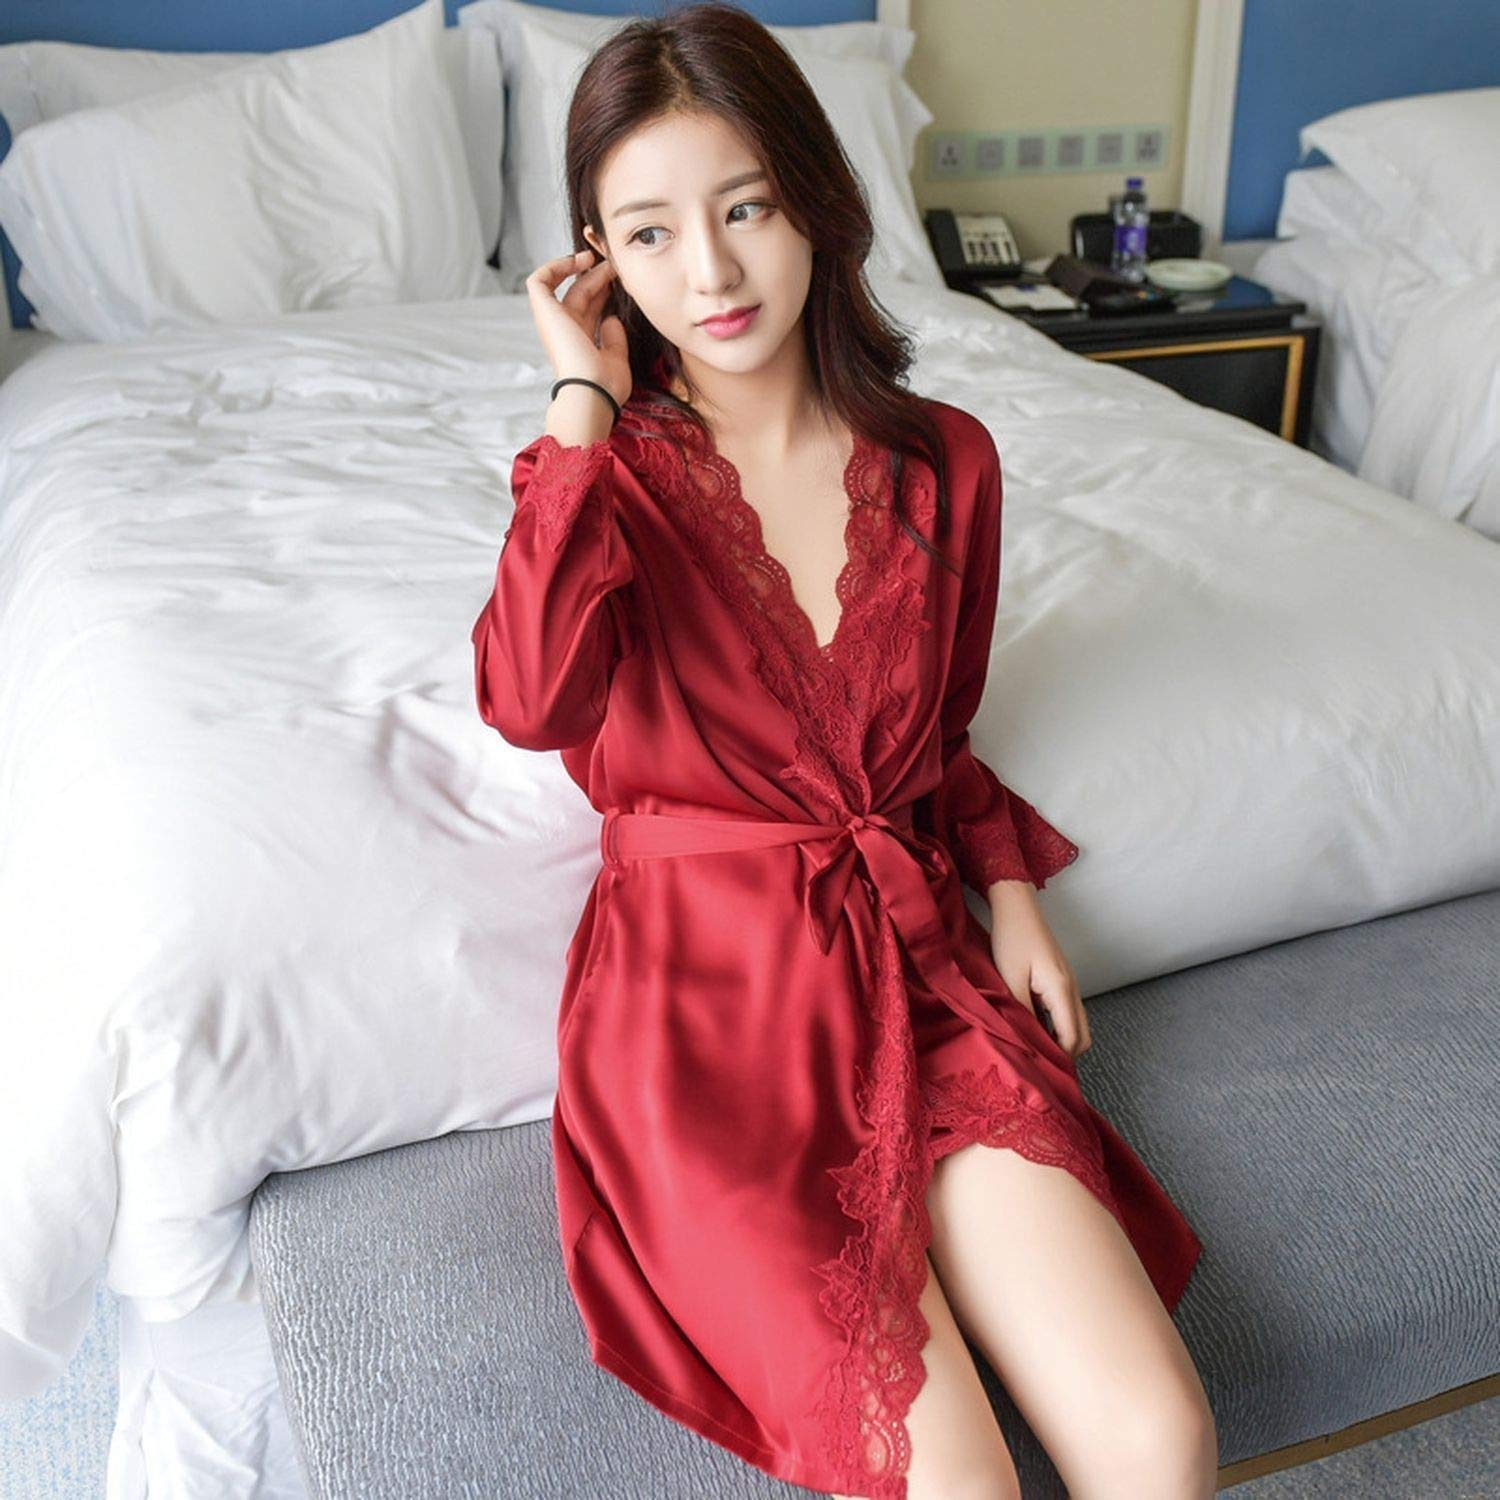 Soft Women Dress Gown Sets Batas De Seda Bathrobe Woman Silk ...